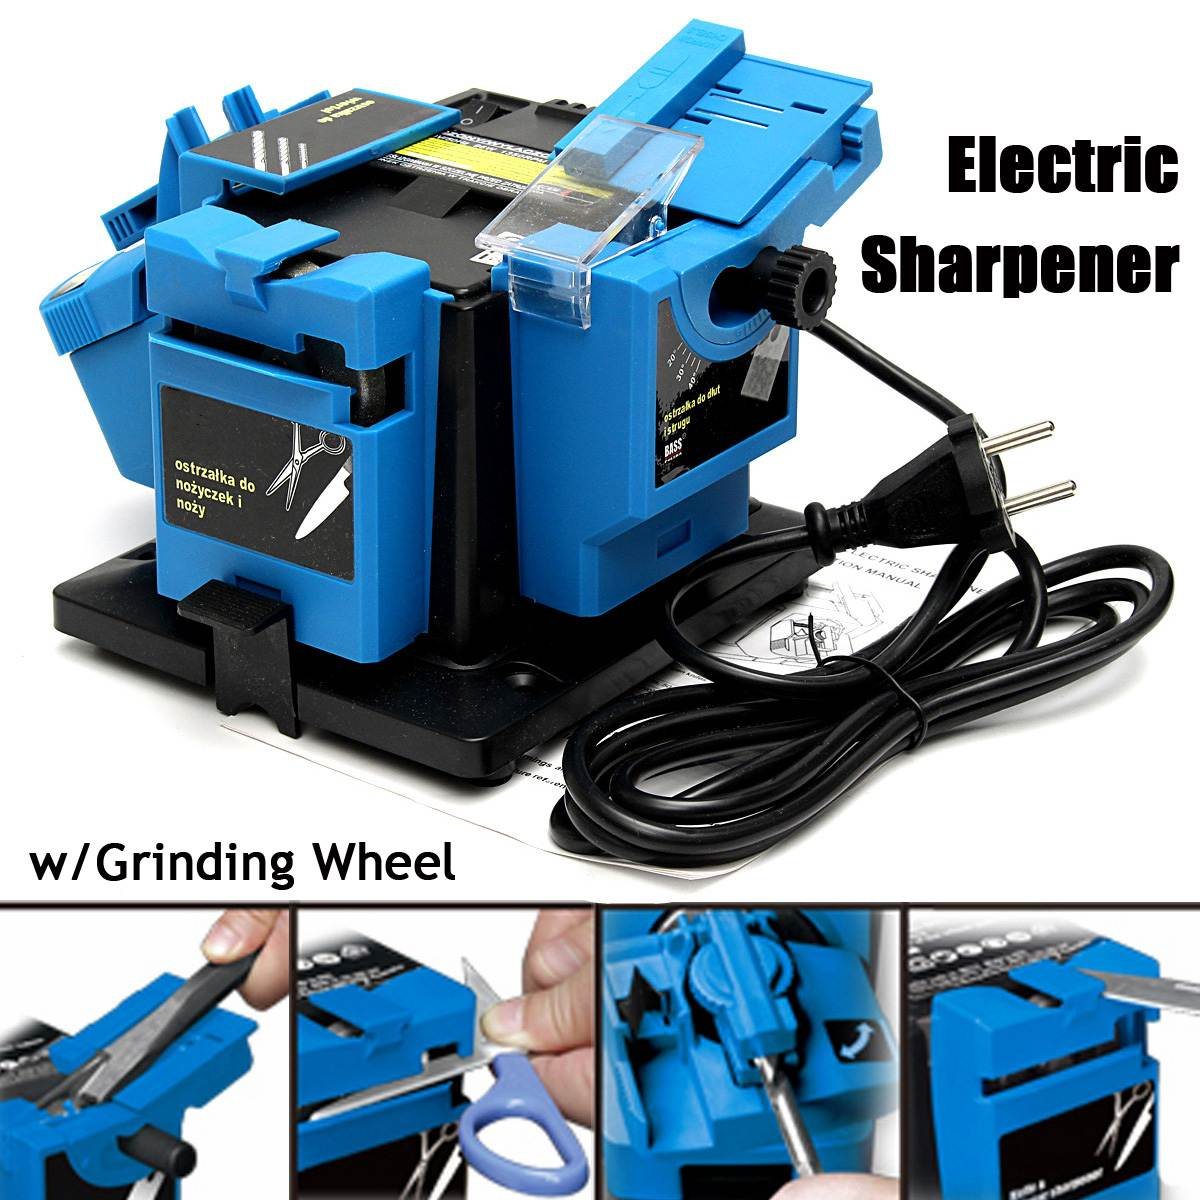 220V Electric Household Sharpener Grinding Tool HSS Drill Bit Knife Scissor Sharpener Grinder 3 12mm 220v electric multi tool grinding machine twist drill bit sharpener grinder